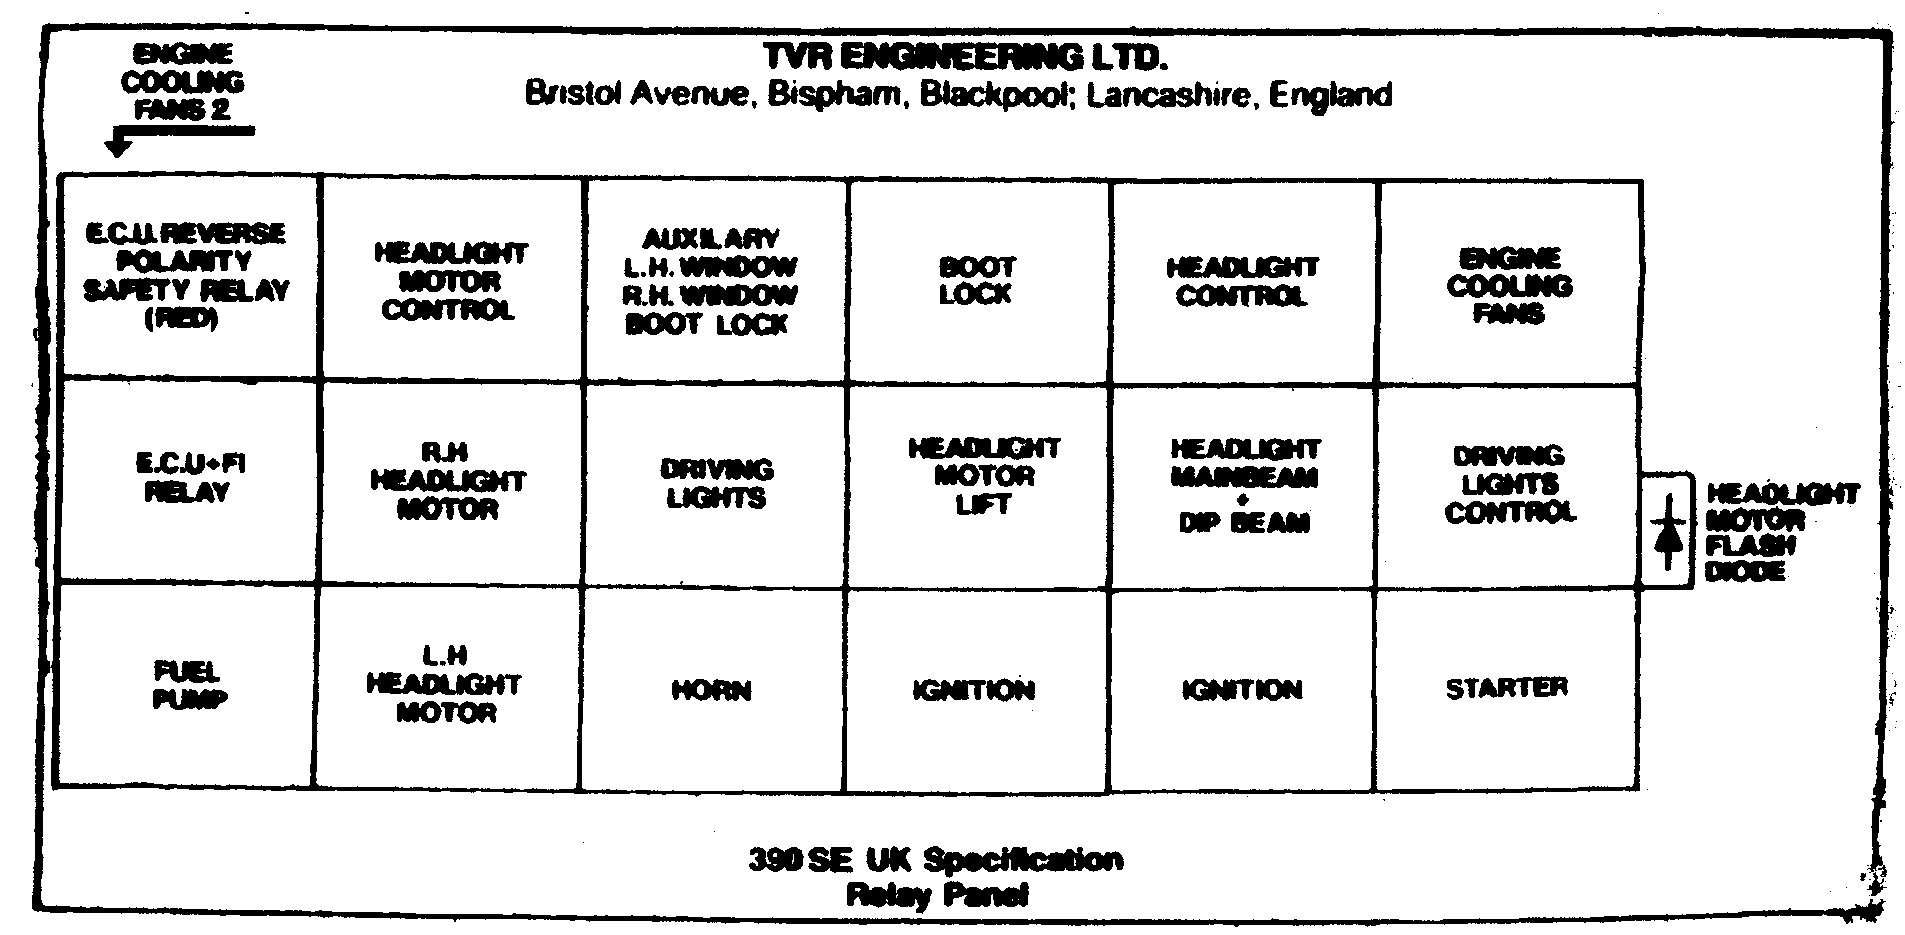 tvr 390se p6 this is a modified version of the actual diagram that was on the car i had to scan and paint shop it to get the correct layout